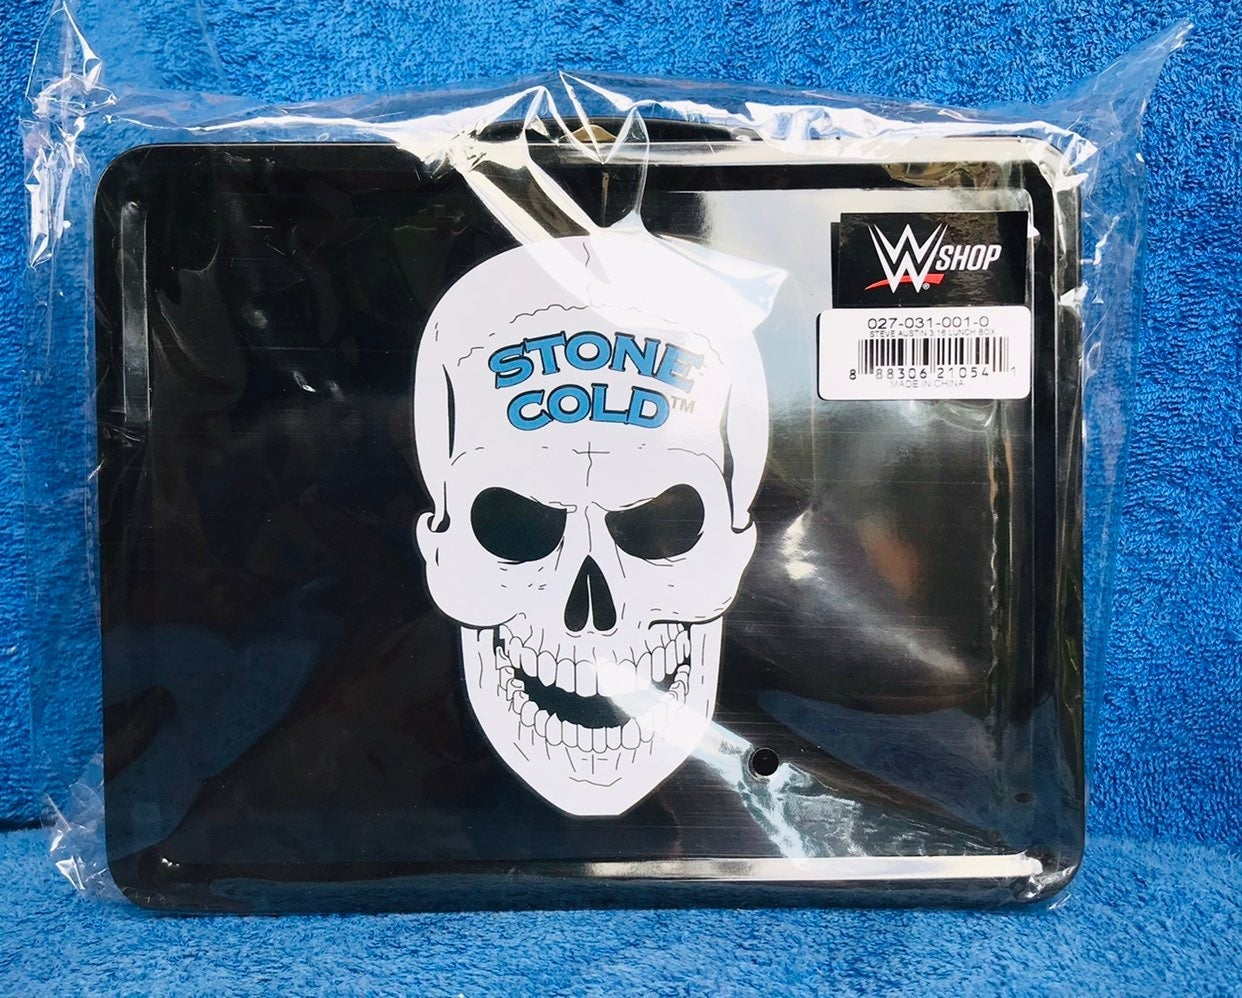 Stone Cold Steve Austin: Lunch Box